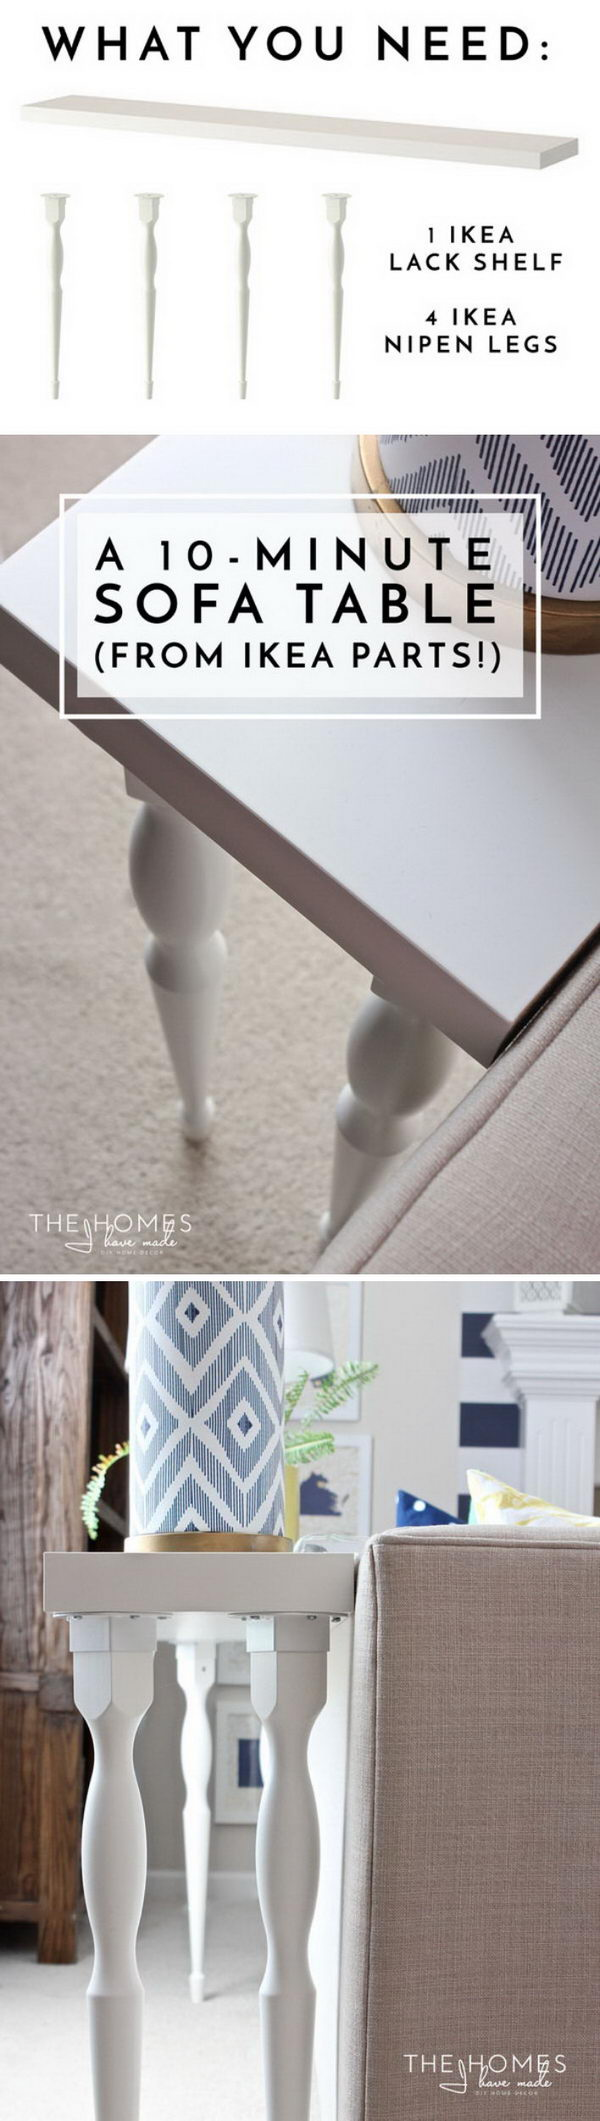 DIY Sofa Table Using Ikea Parts.